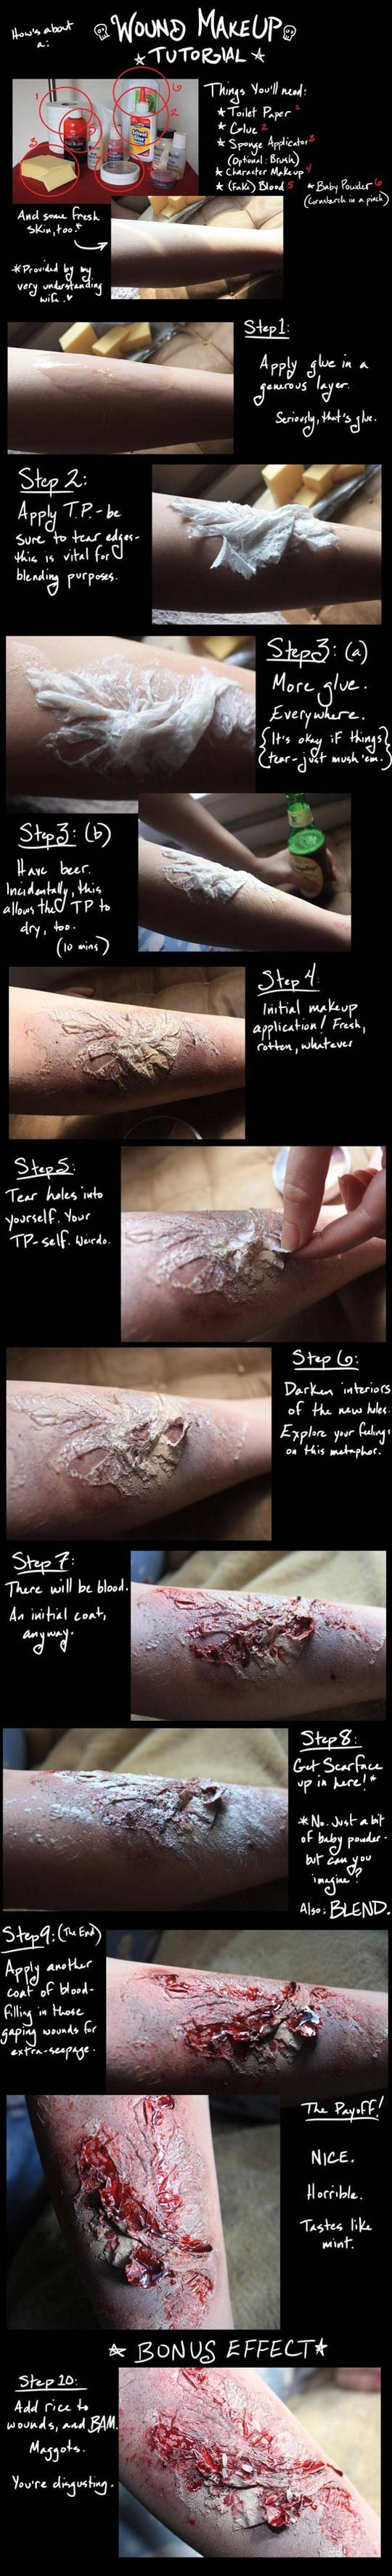 Wound makeup tutorial.